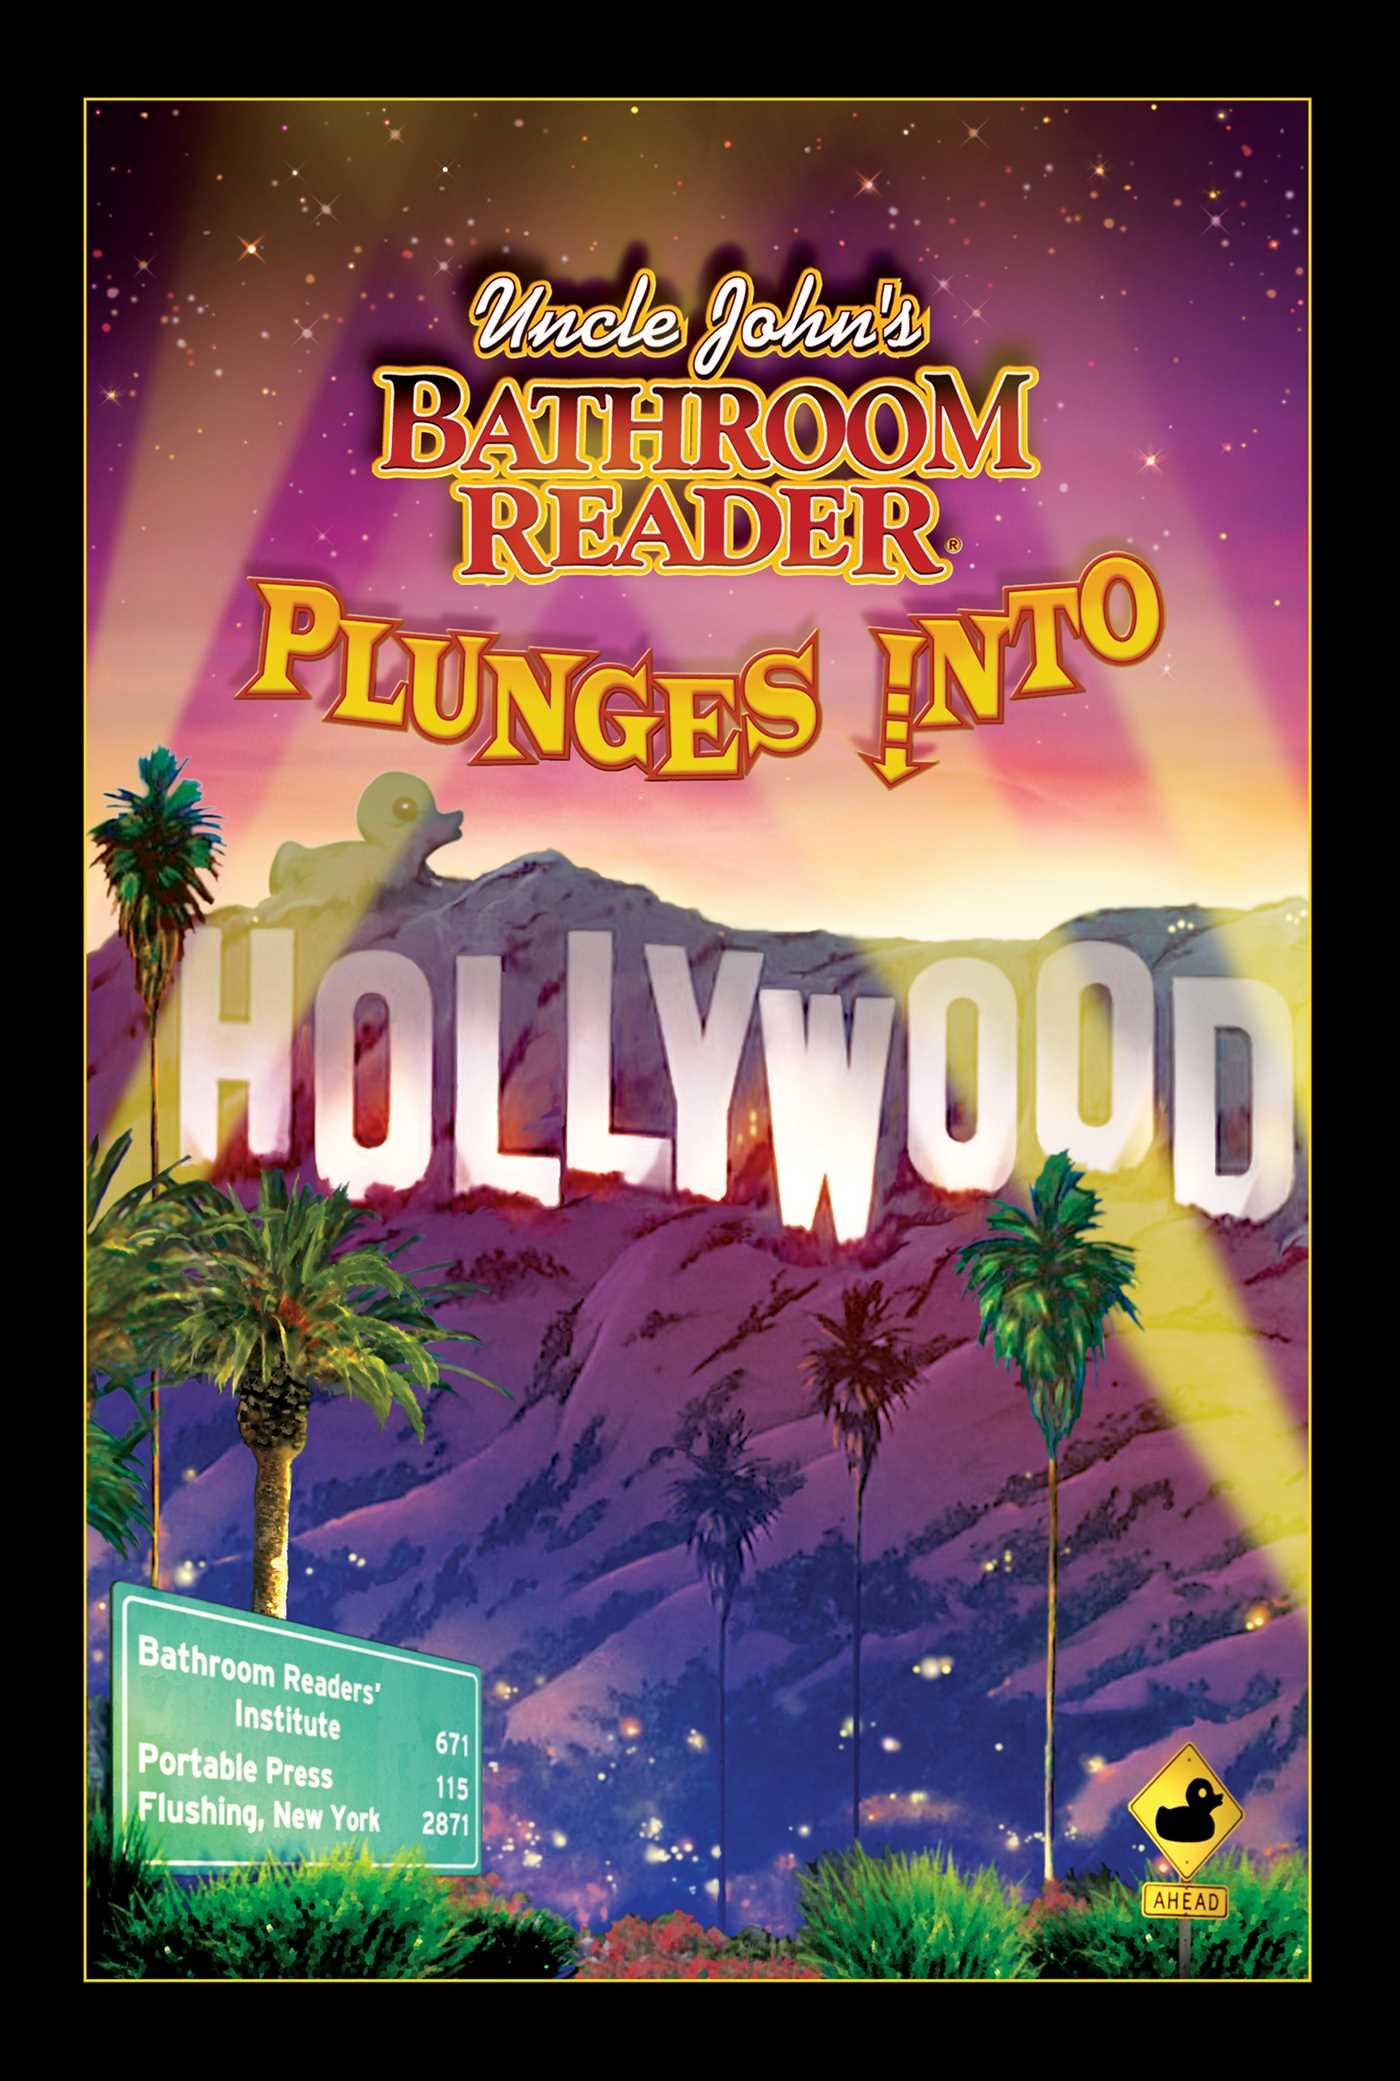 Uncle johns bathroom reader plunges into hollywood 9781607106593 hr